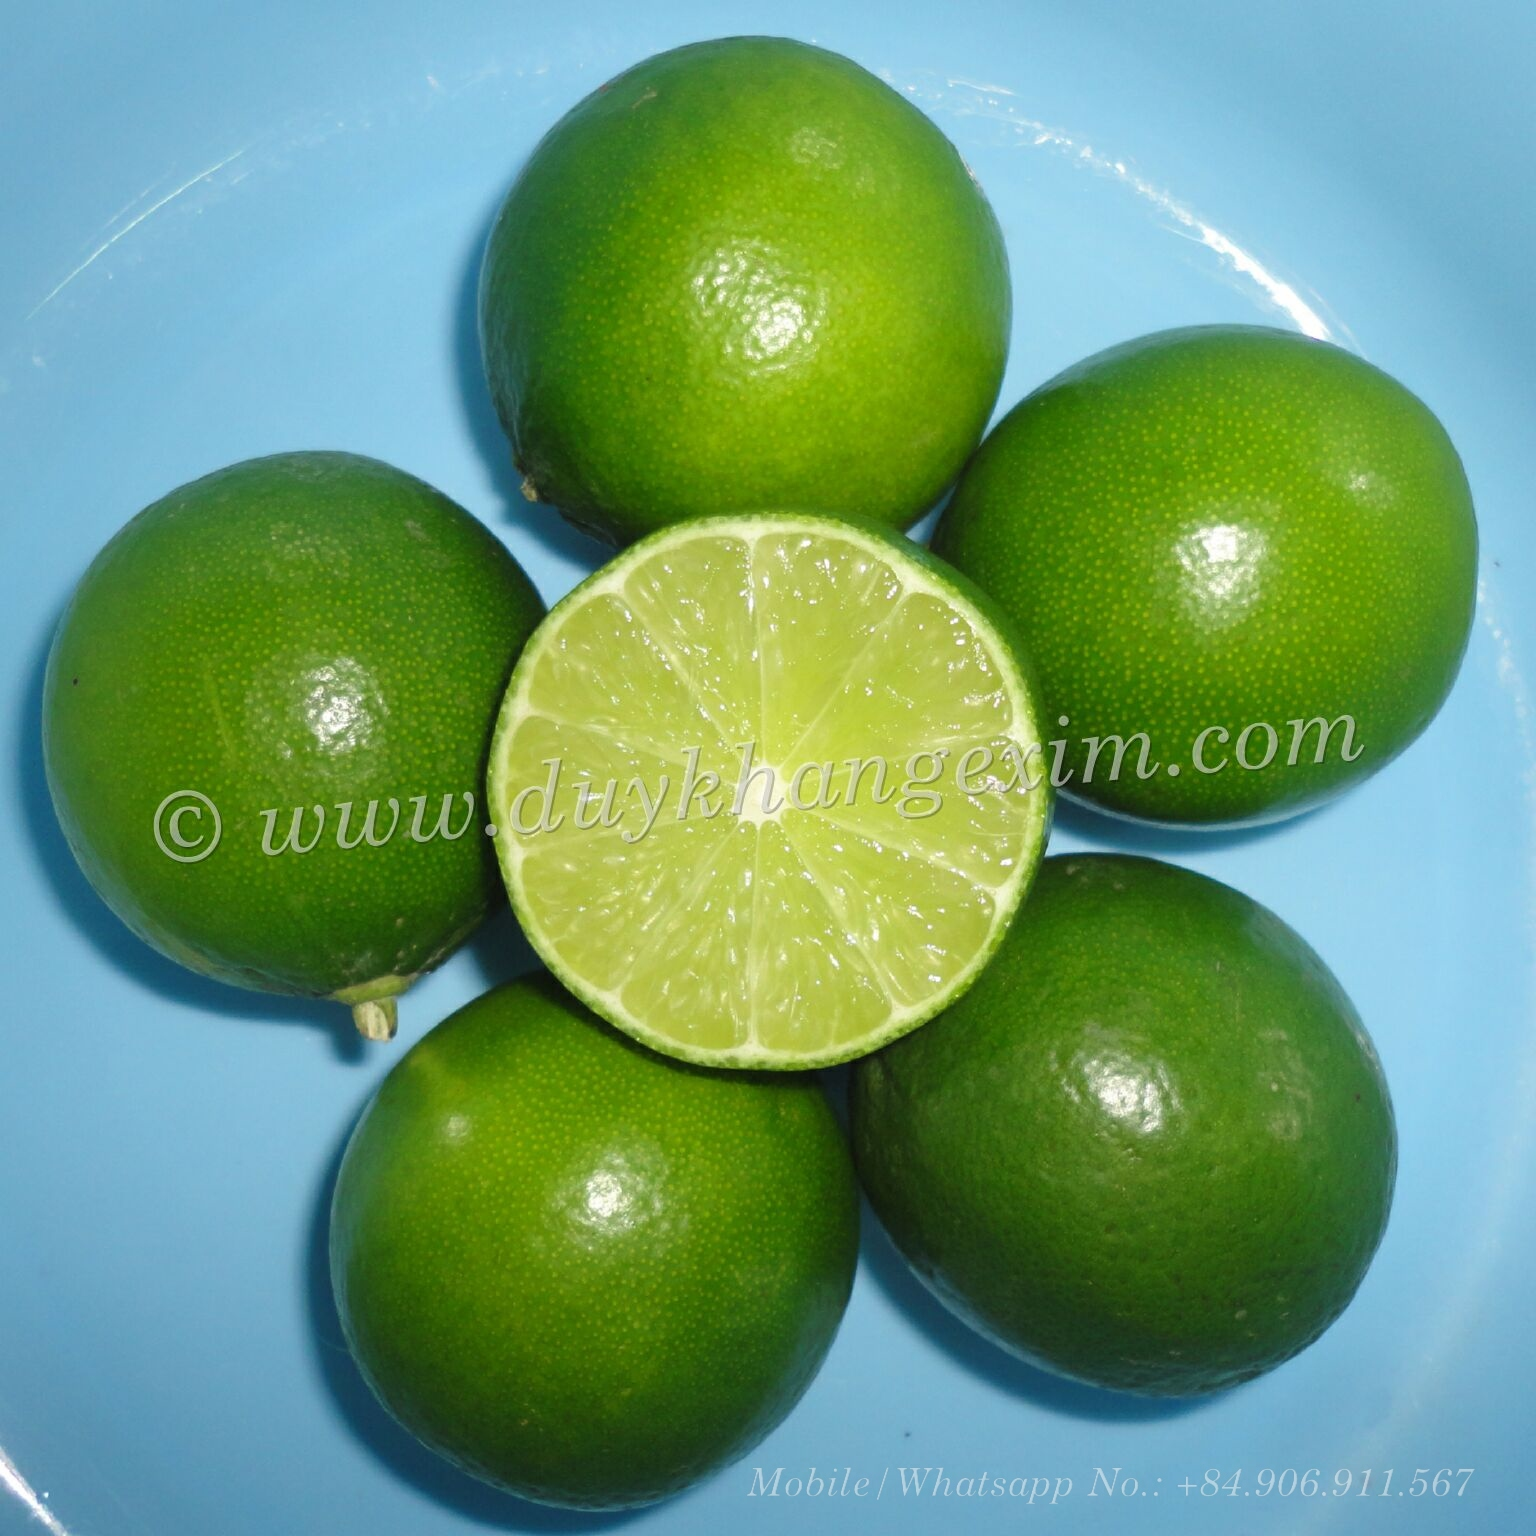 LIME SEEDLESS ORIGIN VIETNAM |Whatsapp No. +84 903 887 753